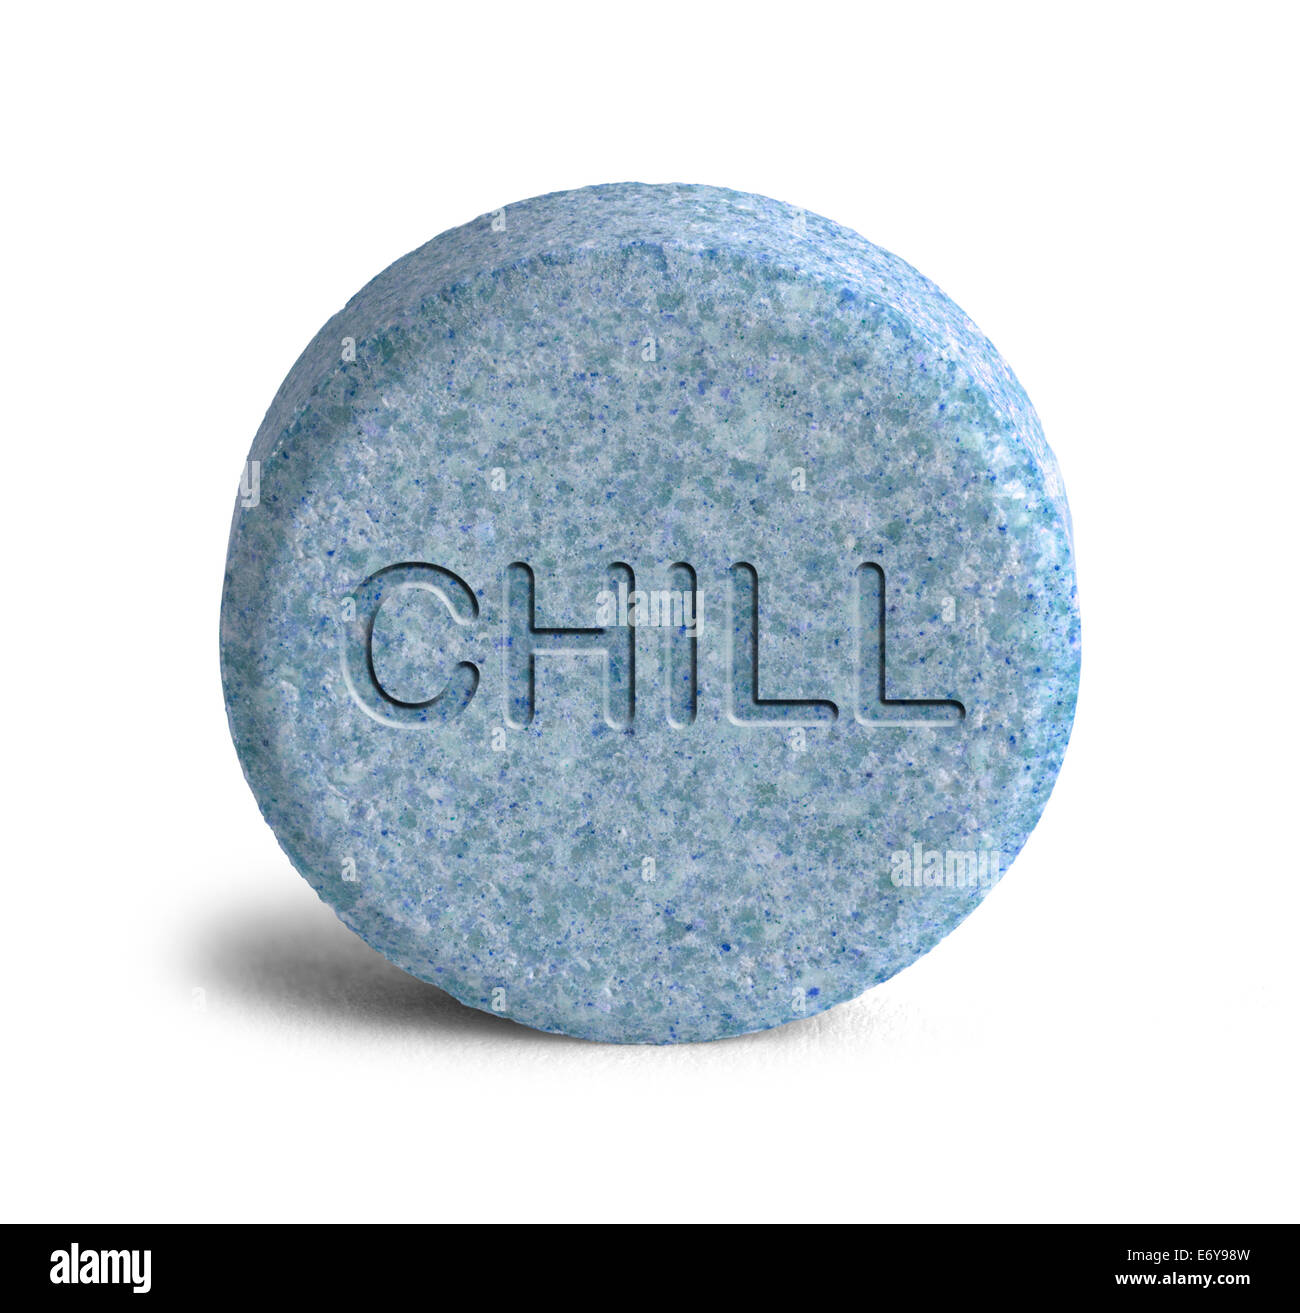 Large Blue Chill Pill Isolated on White Background. - Stock Image